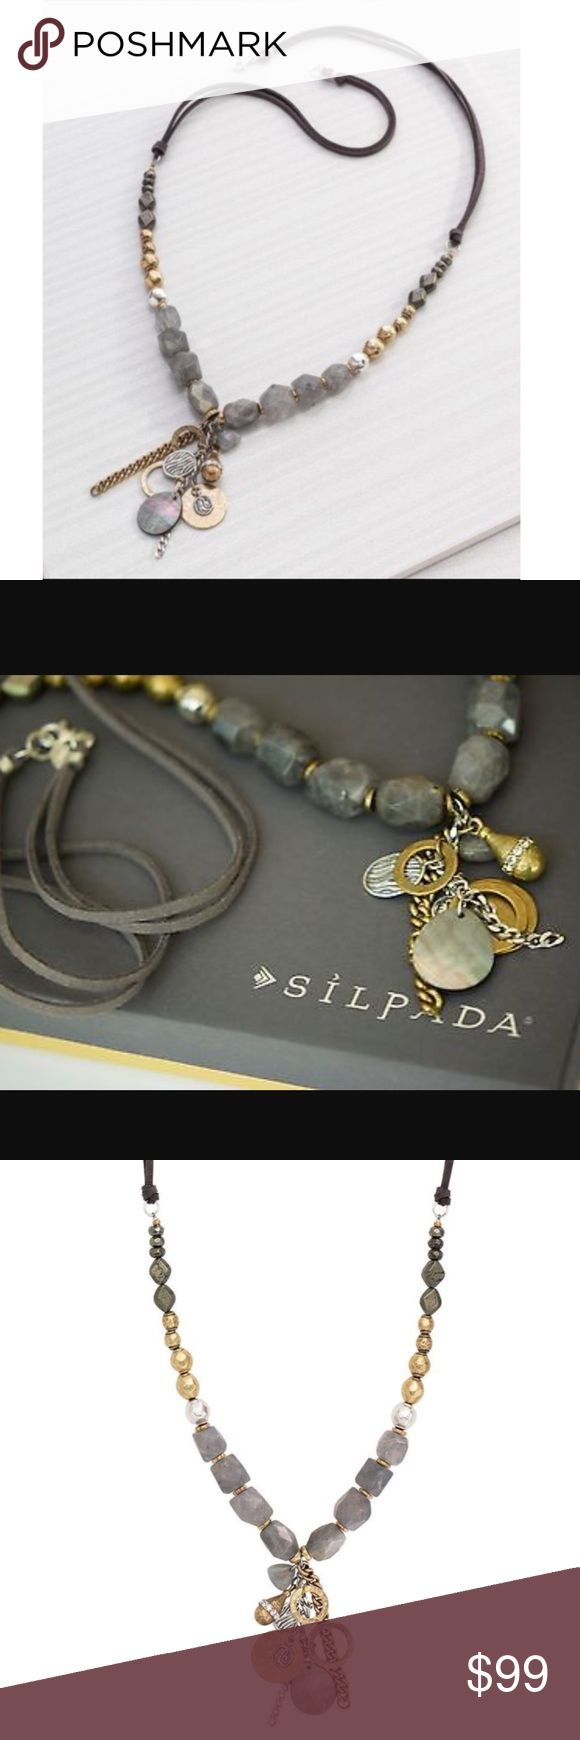 "Silpada Rare ""Ethereal Necklace""  Silpada ""Ethereal Necklace"" Brass, Labradorite Sterling Silver. 30"" Materilal - Agate, Brass, Cord, Labradorite, Pyrite, Shell, Swarovski Crystals ❤️ Silpada Jewelry Necklaces"